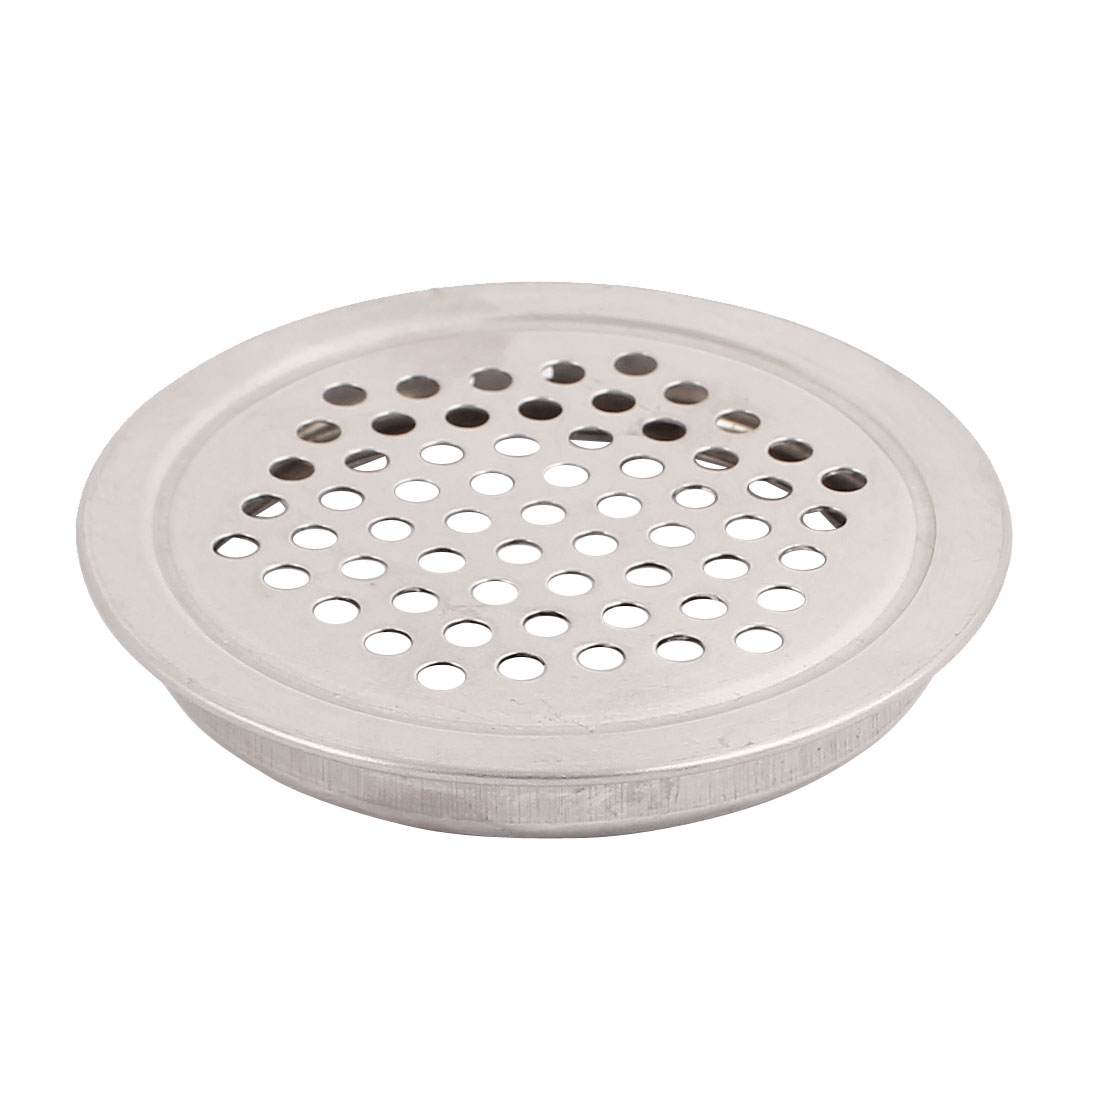 Cupboard 53mm Bottom Dia Round Flat Metal Vent Louver Mesh Hole Silver Tone